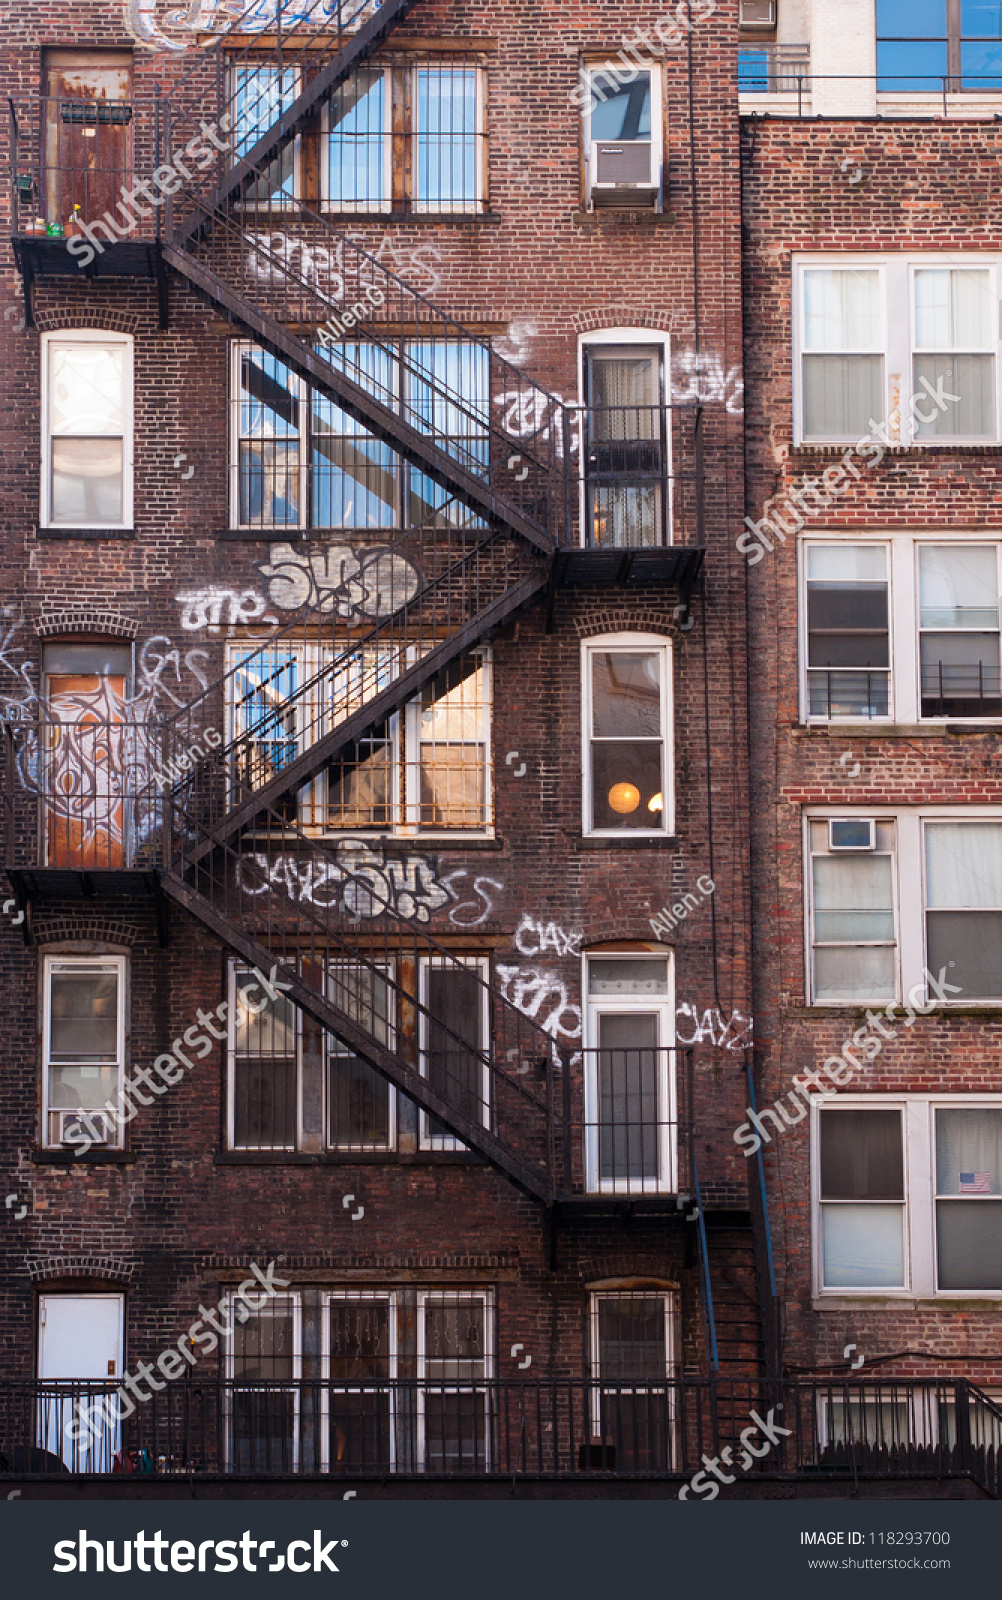 new york apartments buildings. Stock photo back side of a brick apartment building in manhattan showing  the fire escape and Old New York Apartment Upper East Side Manhattan